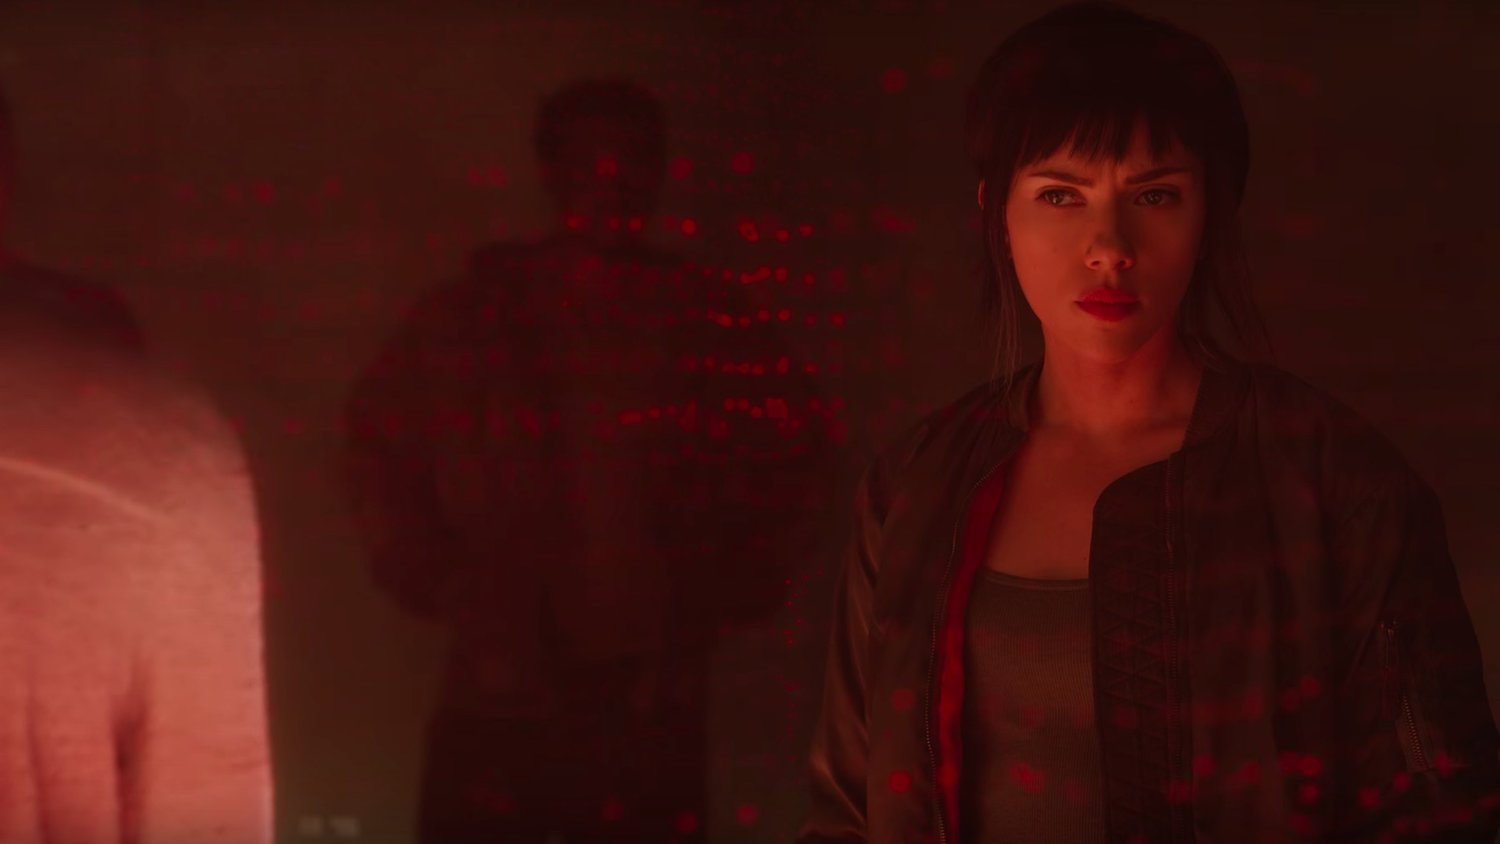 Awesome New Trailer for Scarlett Johansson's GHOST IN THE SHELL Features New Footage and Story Details